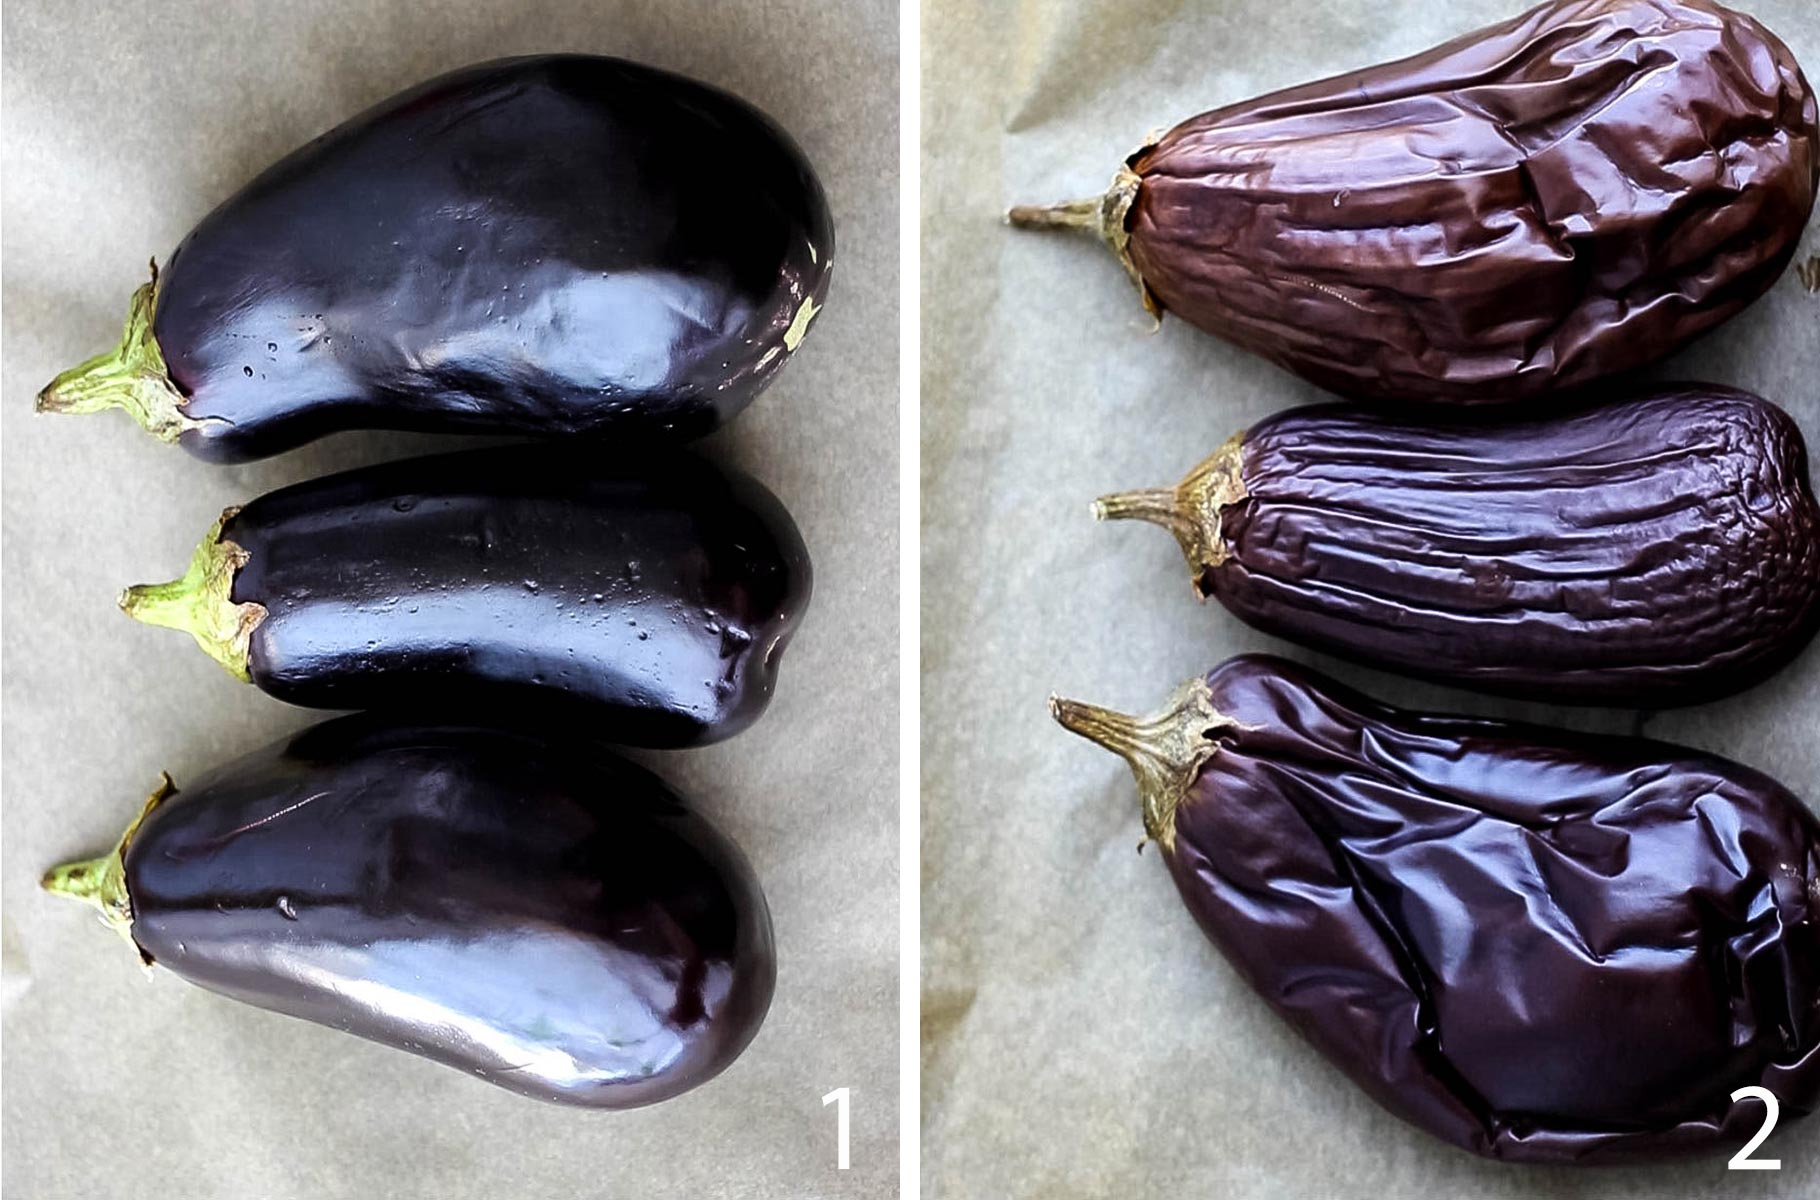 Three eggplants before roasting and three eggplants after roasting